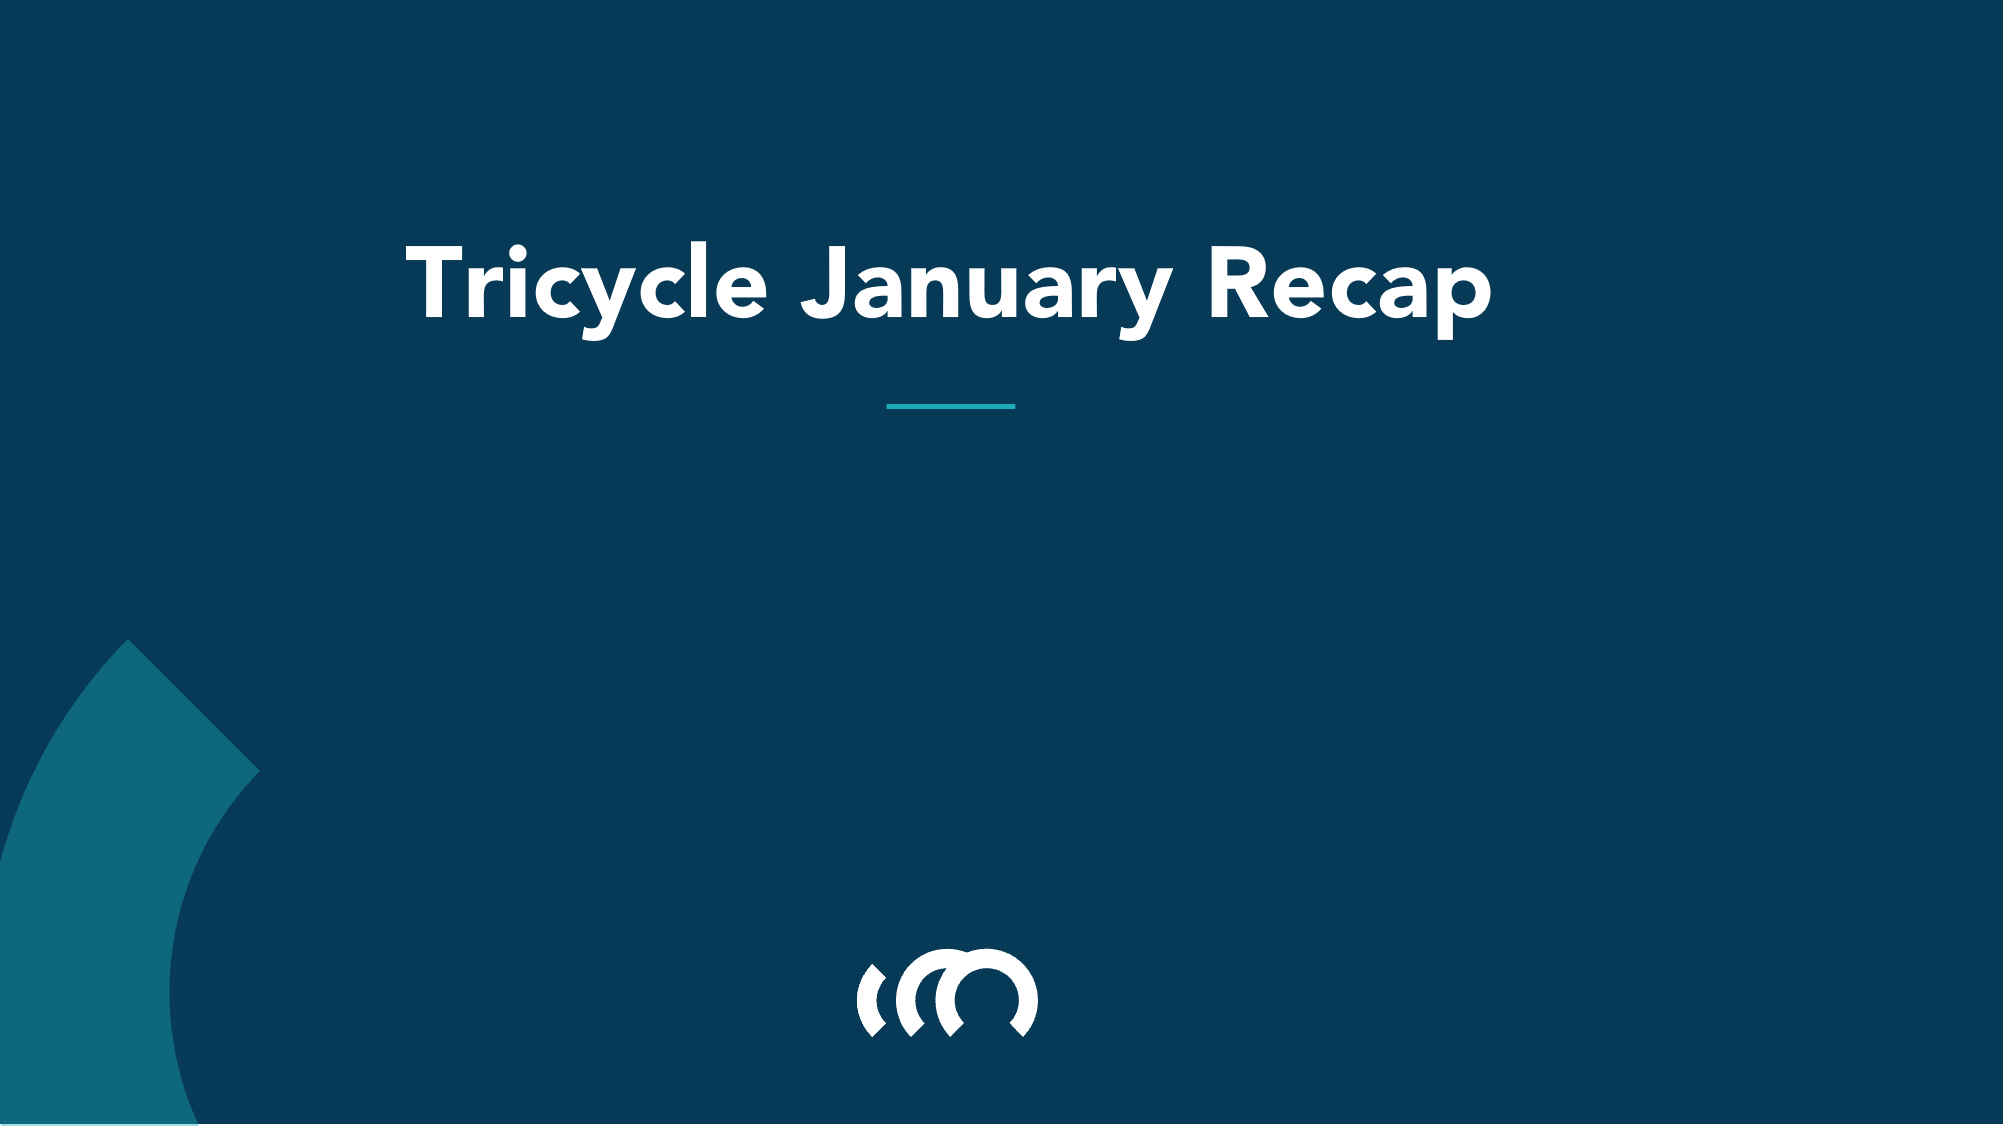 What Happened At Tricycle In January?